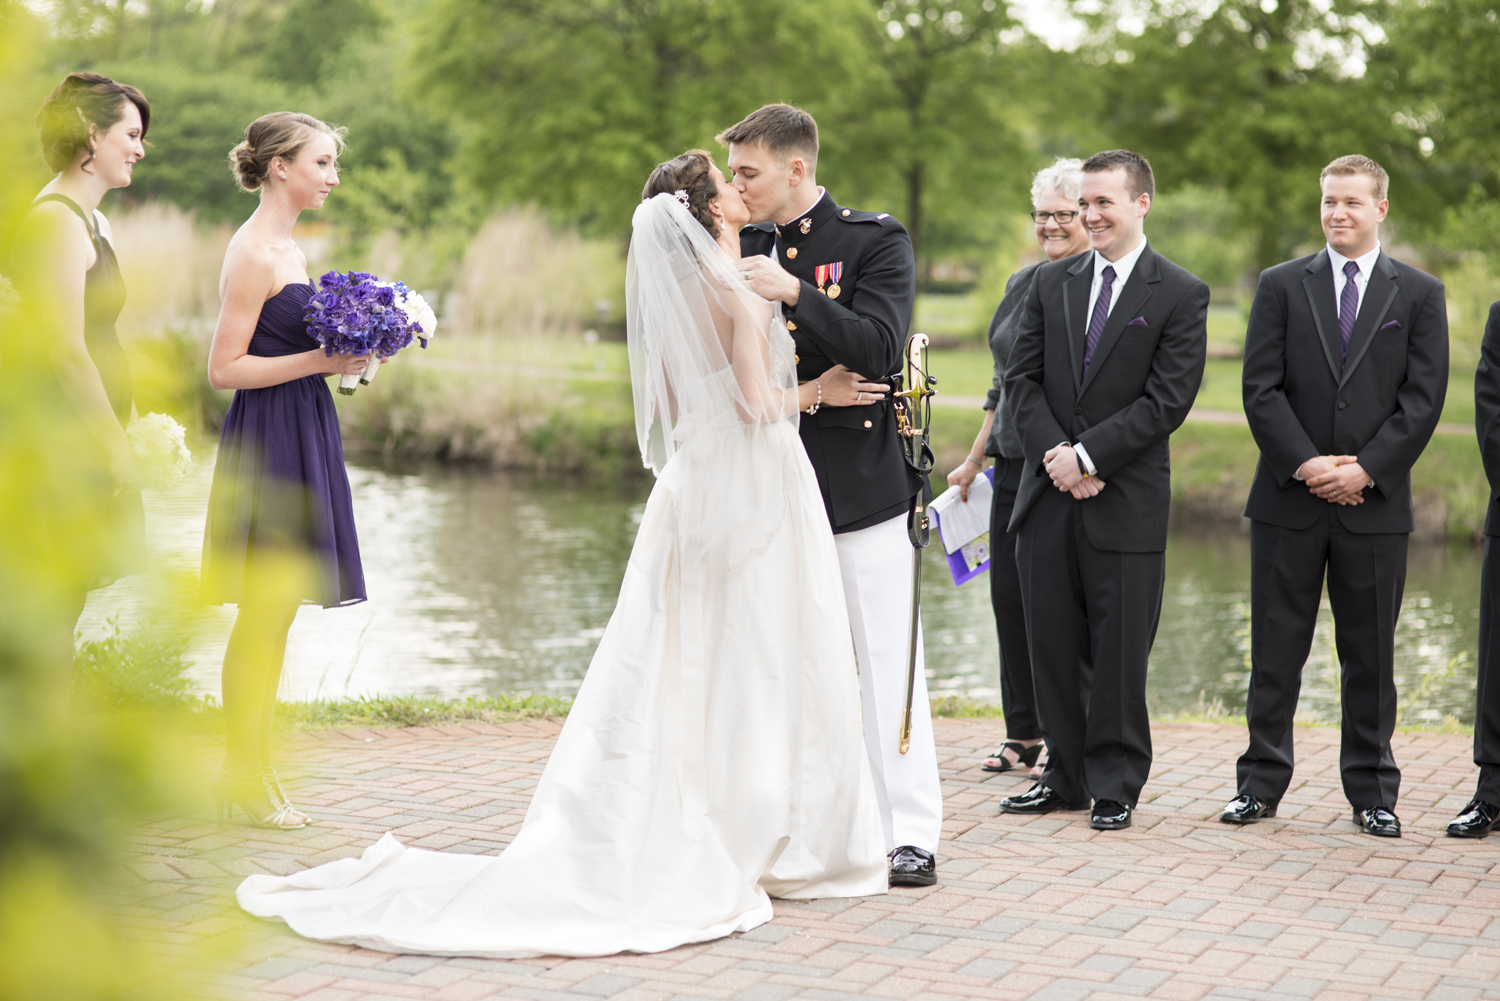 Bride and groom's first kiss |Maria Grace Photography